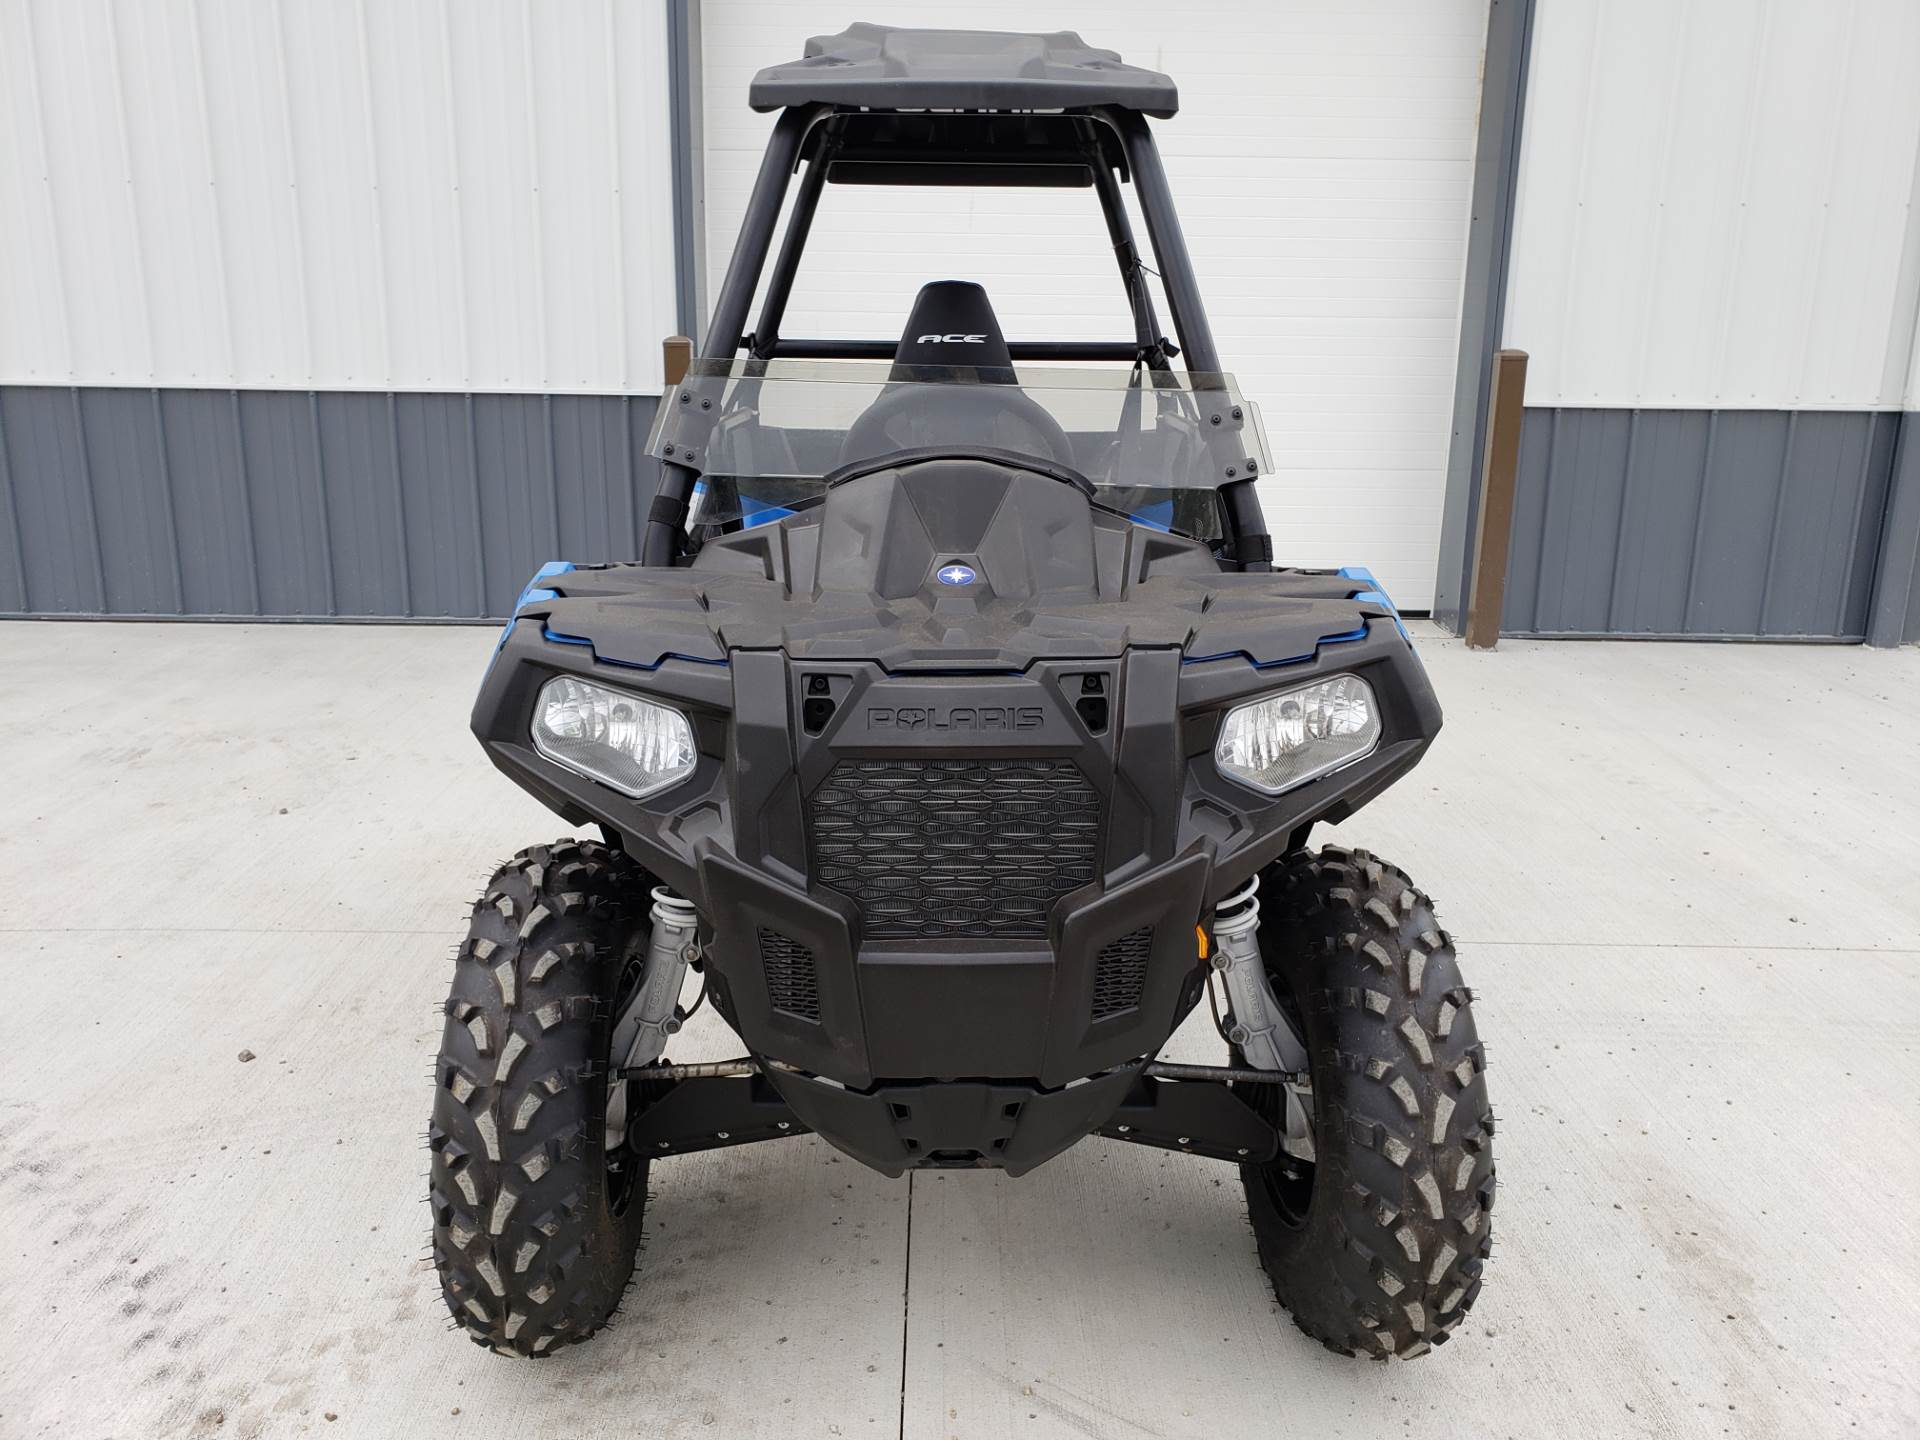 2015 Polaris ACE™ 570 in Cambridge, Ohio - Photo 3